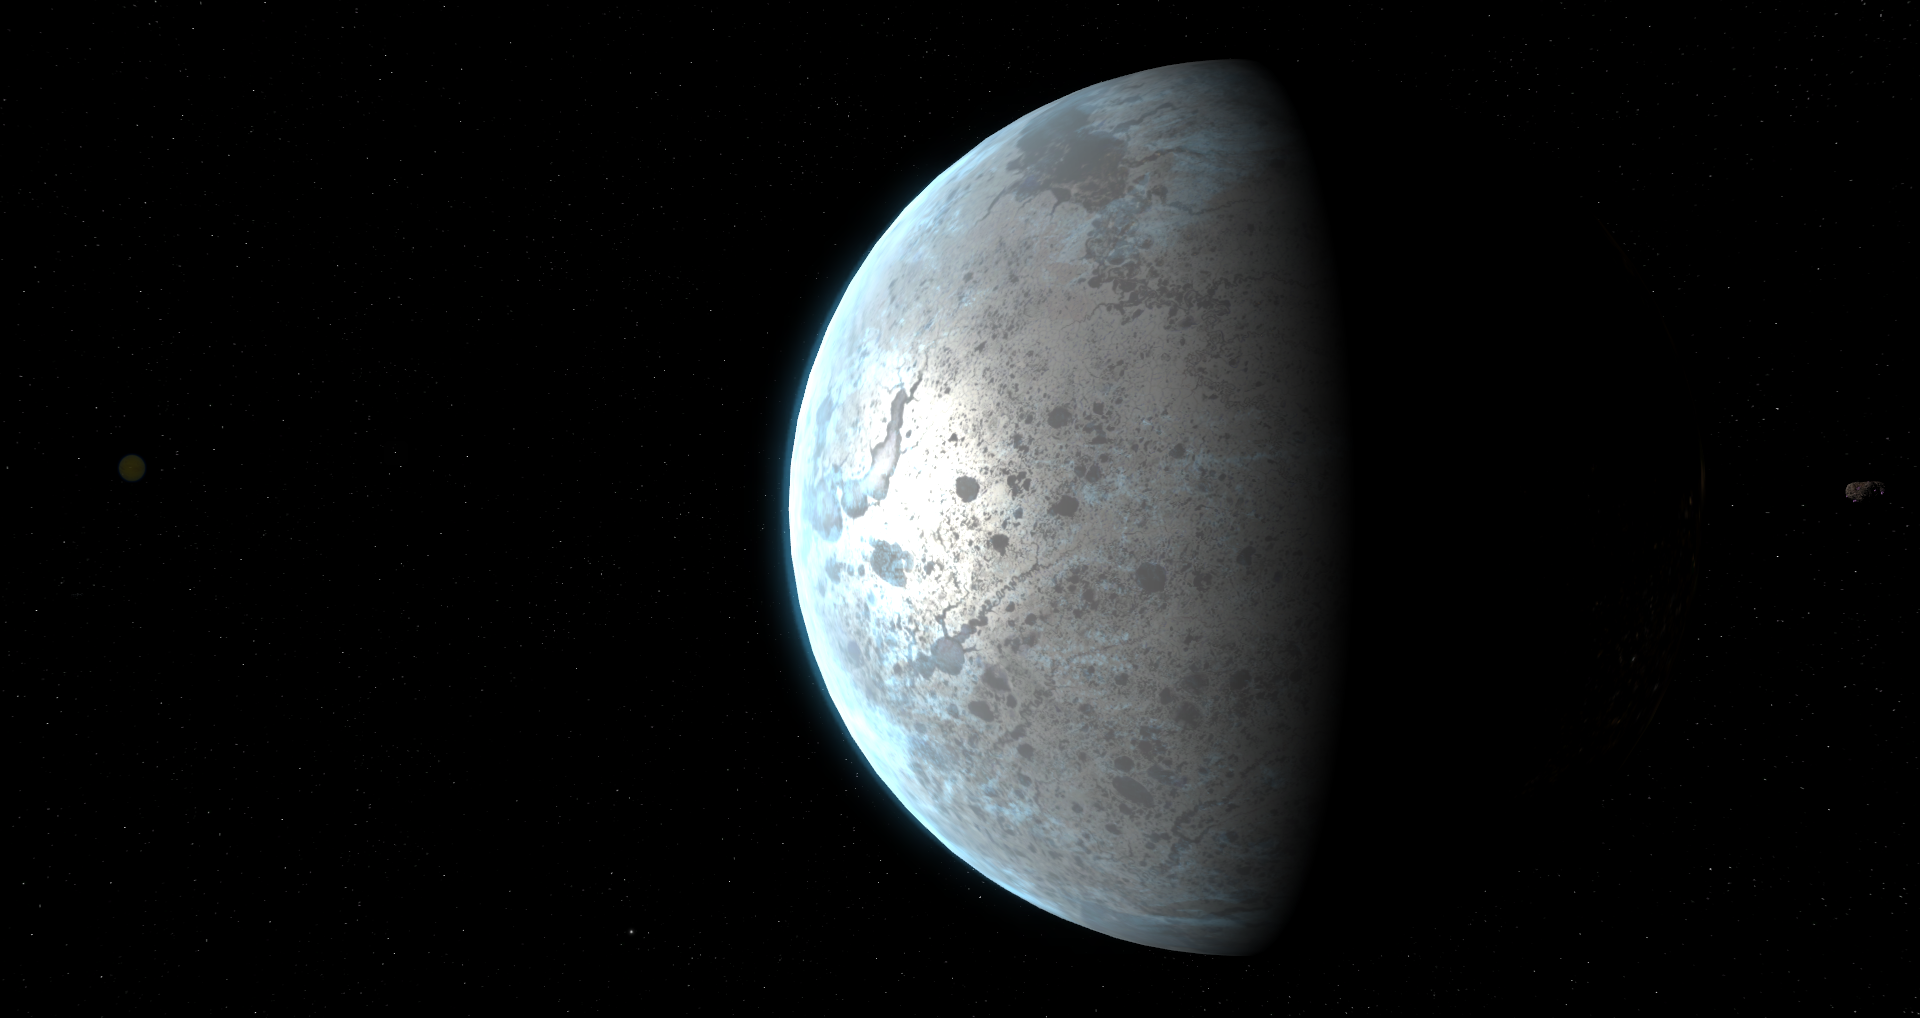 Updated specular mapping for the iced worlds